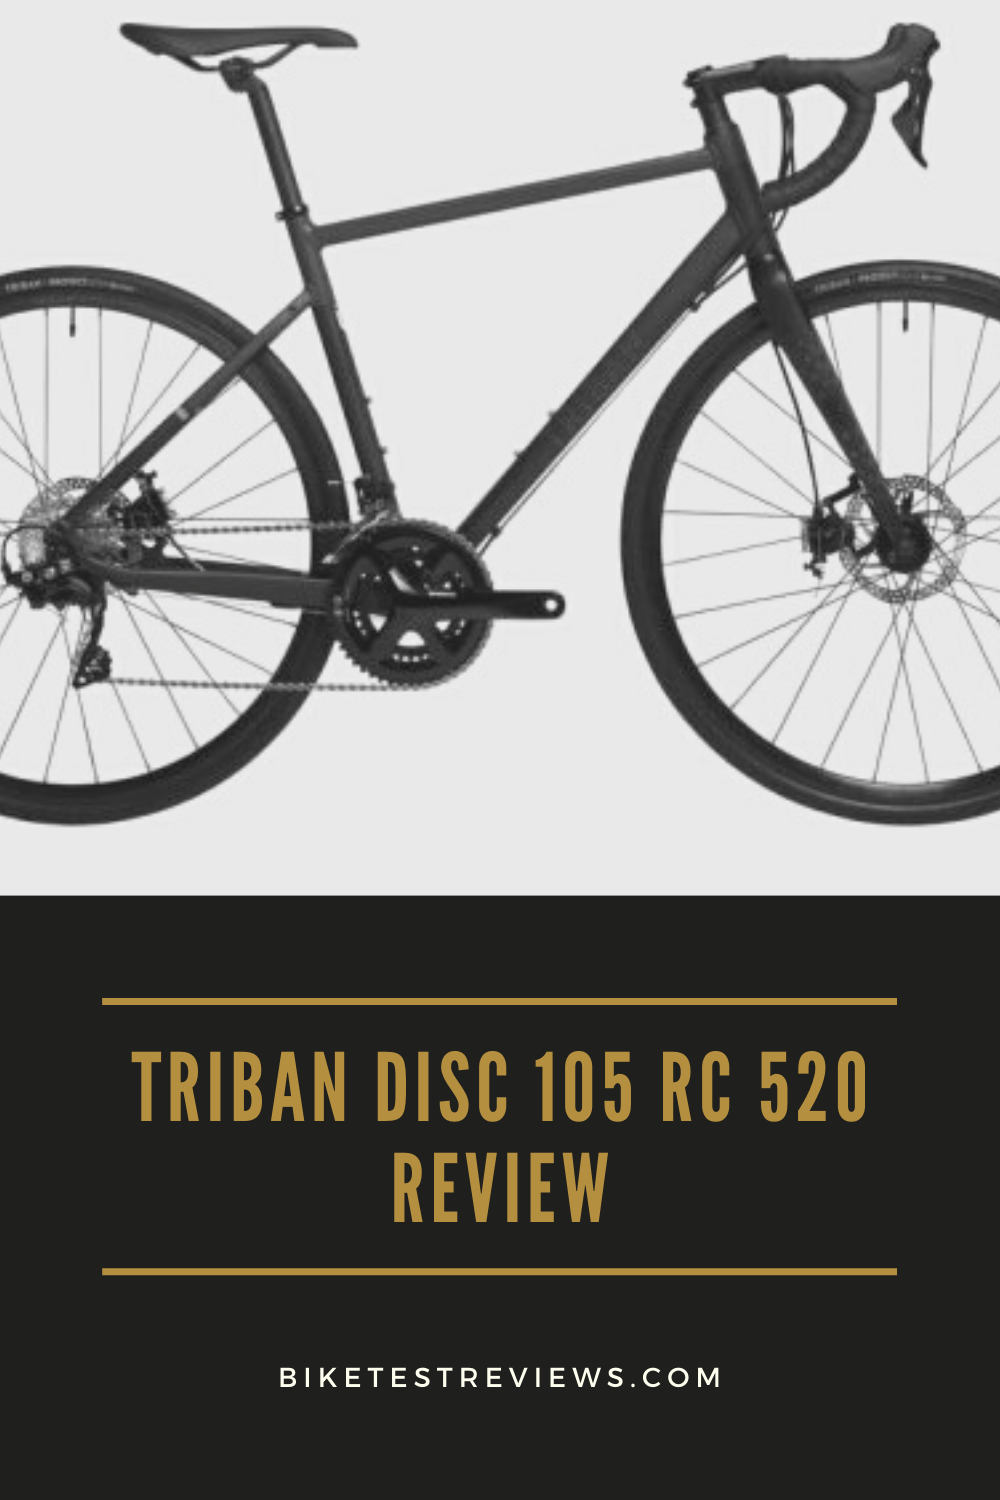 Pin On Bike Reviews